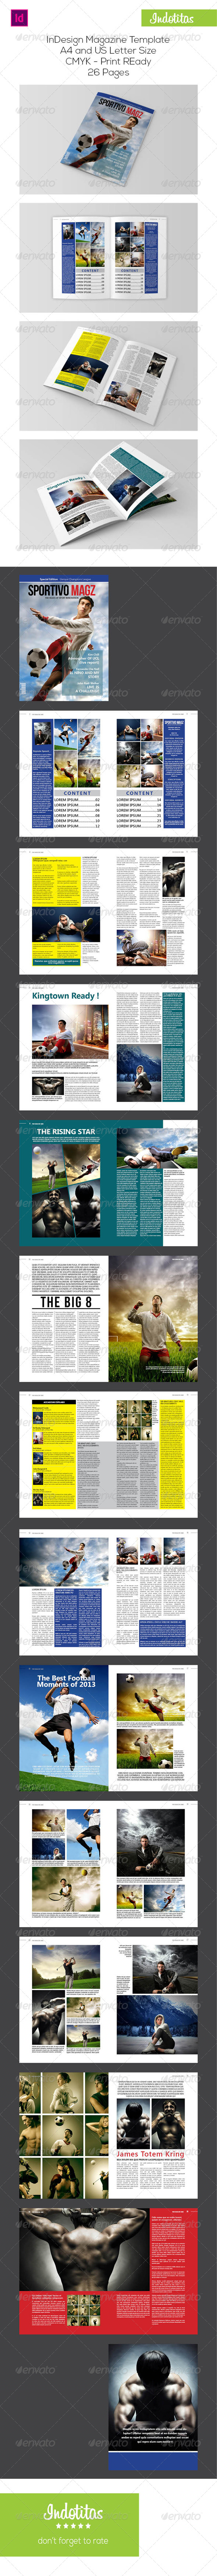 Sport InDesign Magazine Template - Magazines Print Templates